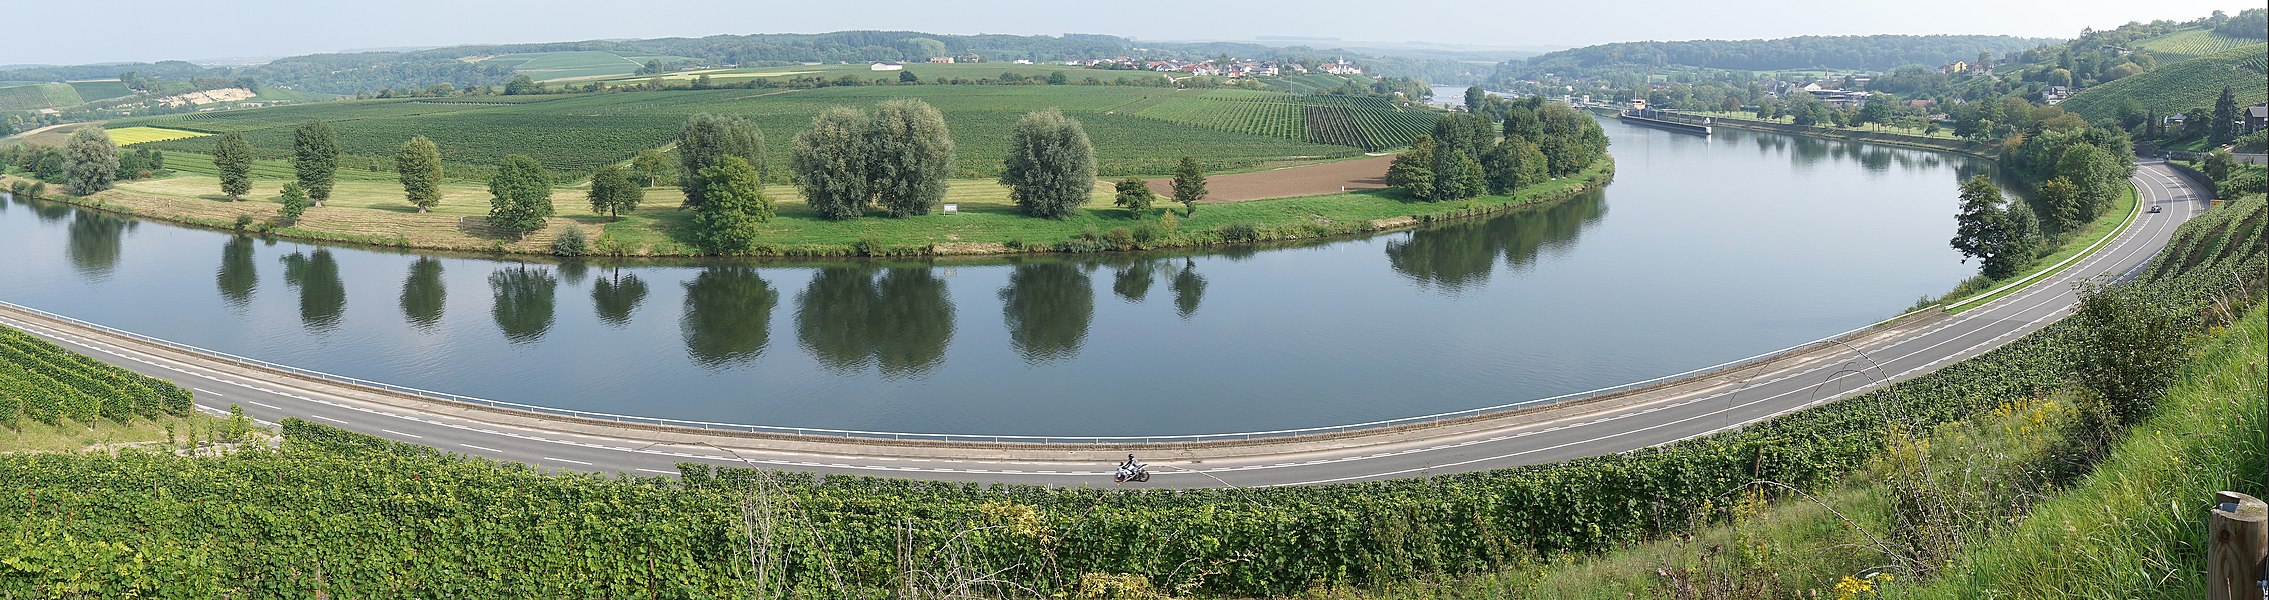 Moselle panorama between Stadtbredimus and Hëttermillen. Stadtbredimus is visible in the background on the right side. In the middle on the german side, Palzem is visible.